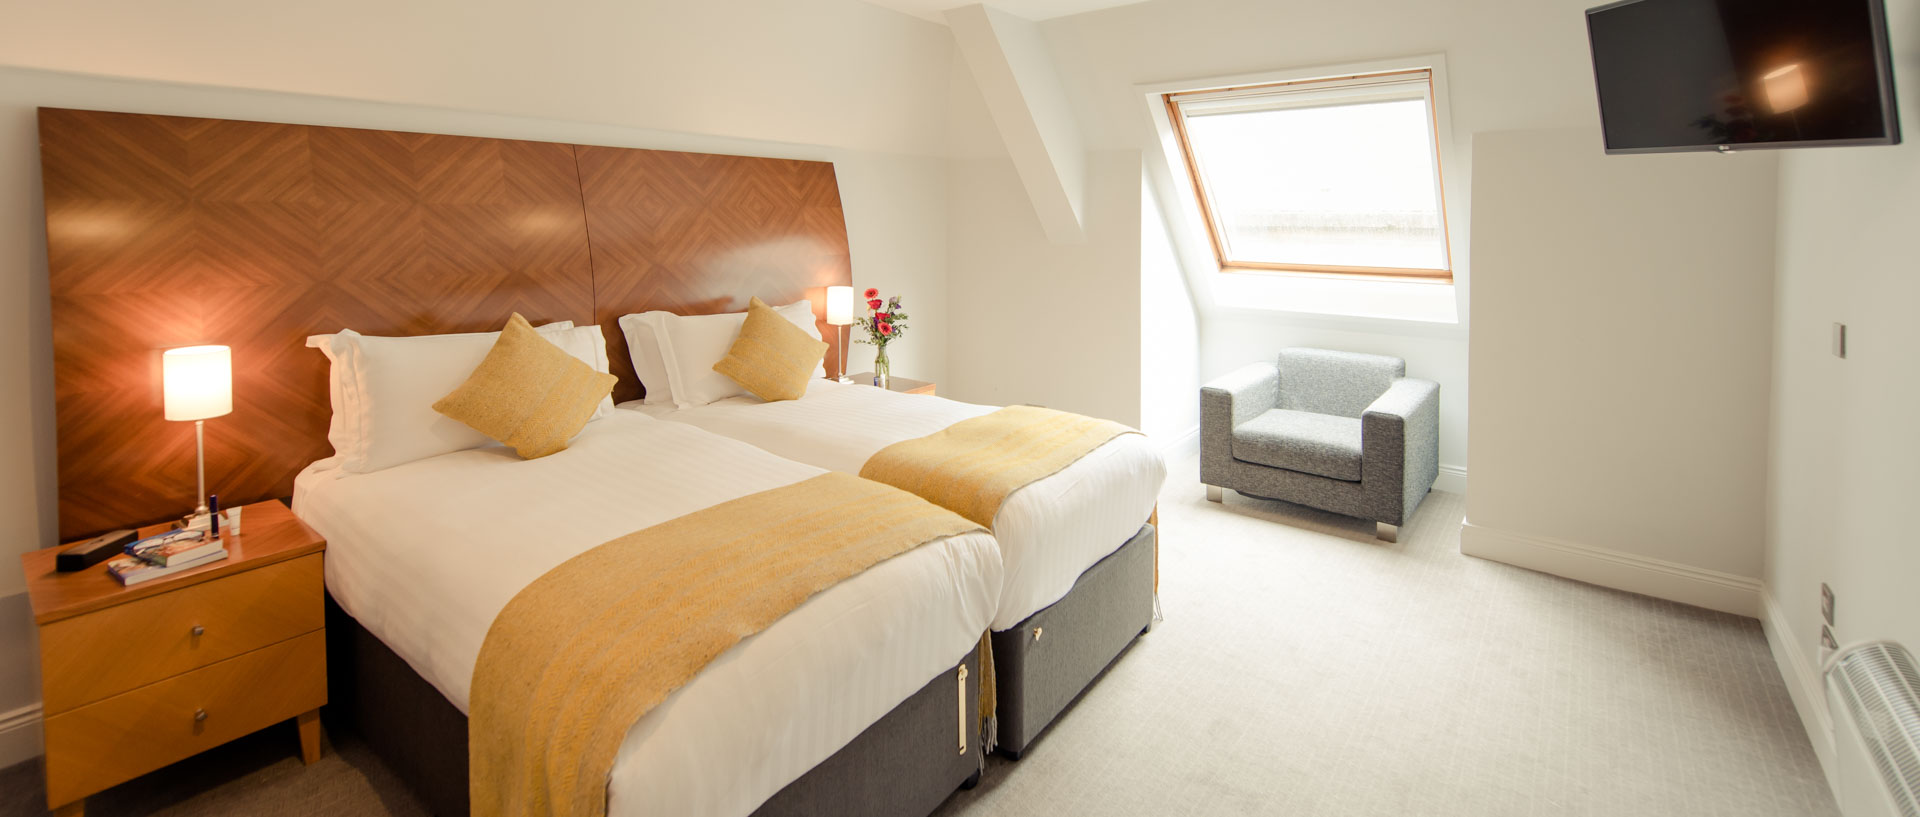 PREMIER SUITES PLUS Leeson Street double bed